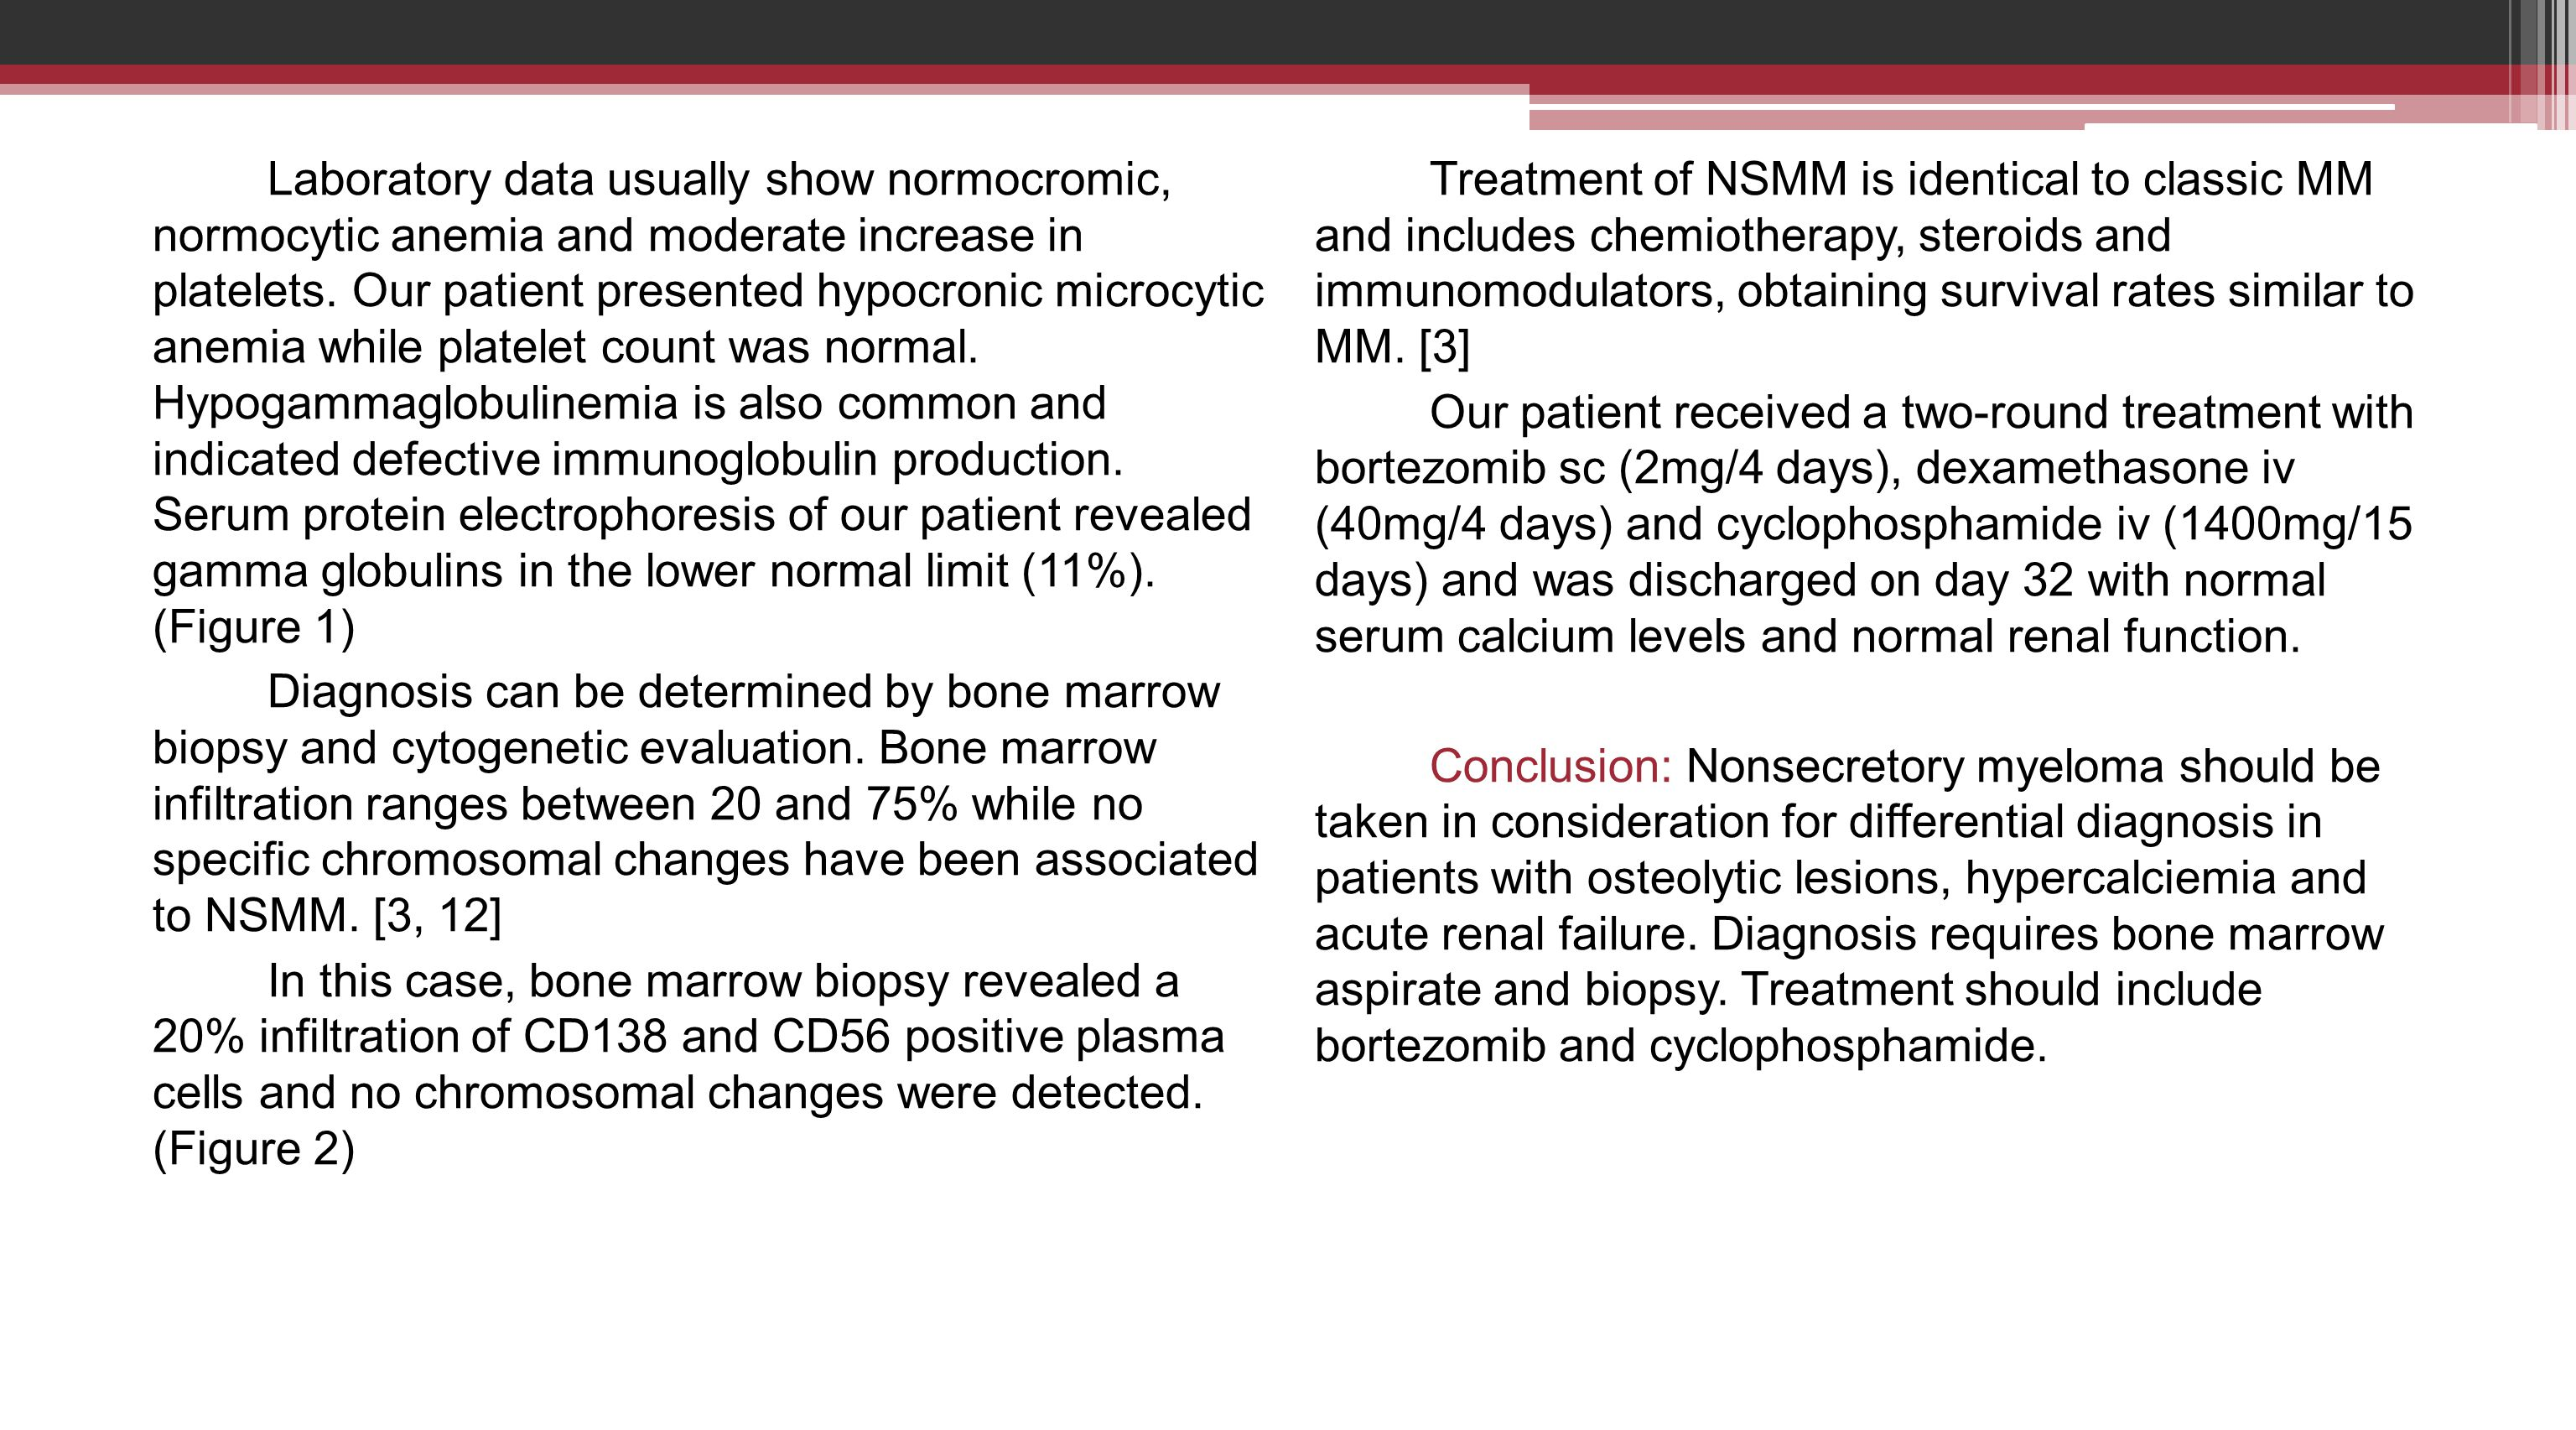 Laboratory data usually show normocromic, normocytic anemia and moderate increase in platelets.